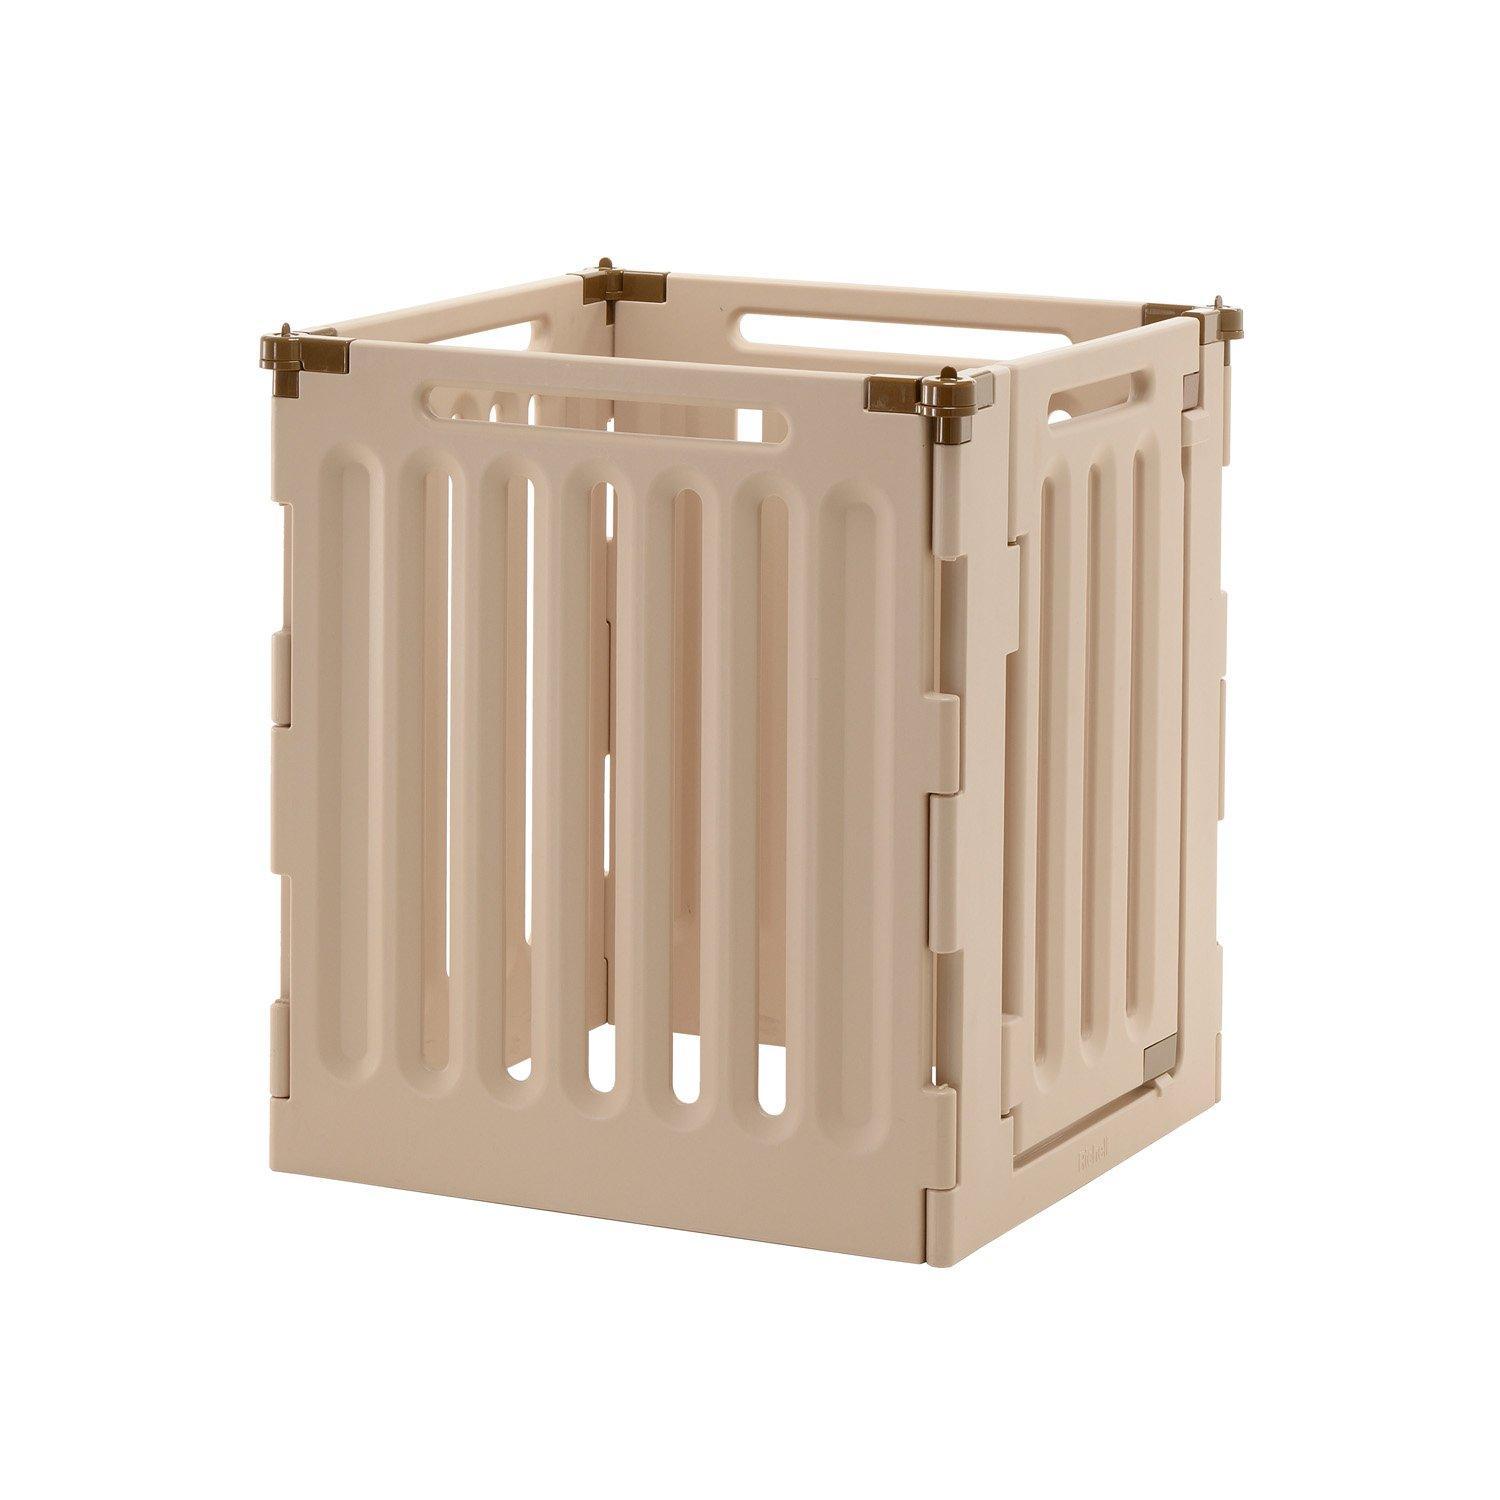 Richell Convertible Indoor Outdoor Play Pen, Four Panel, 33.1 In, Off White